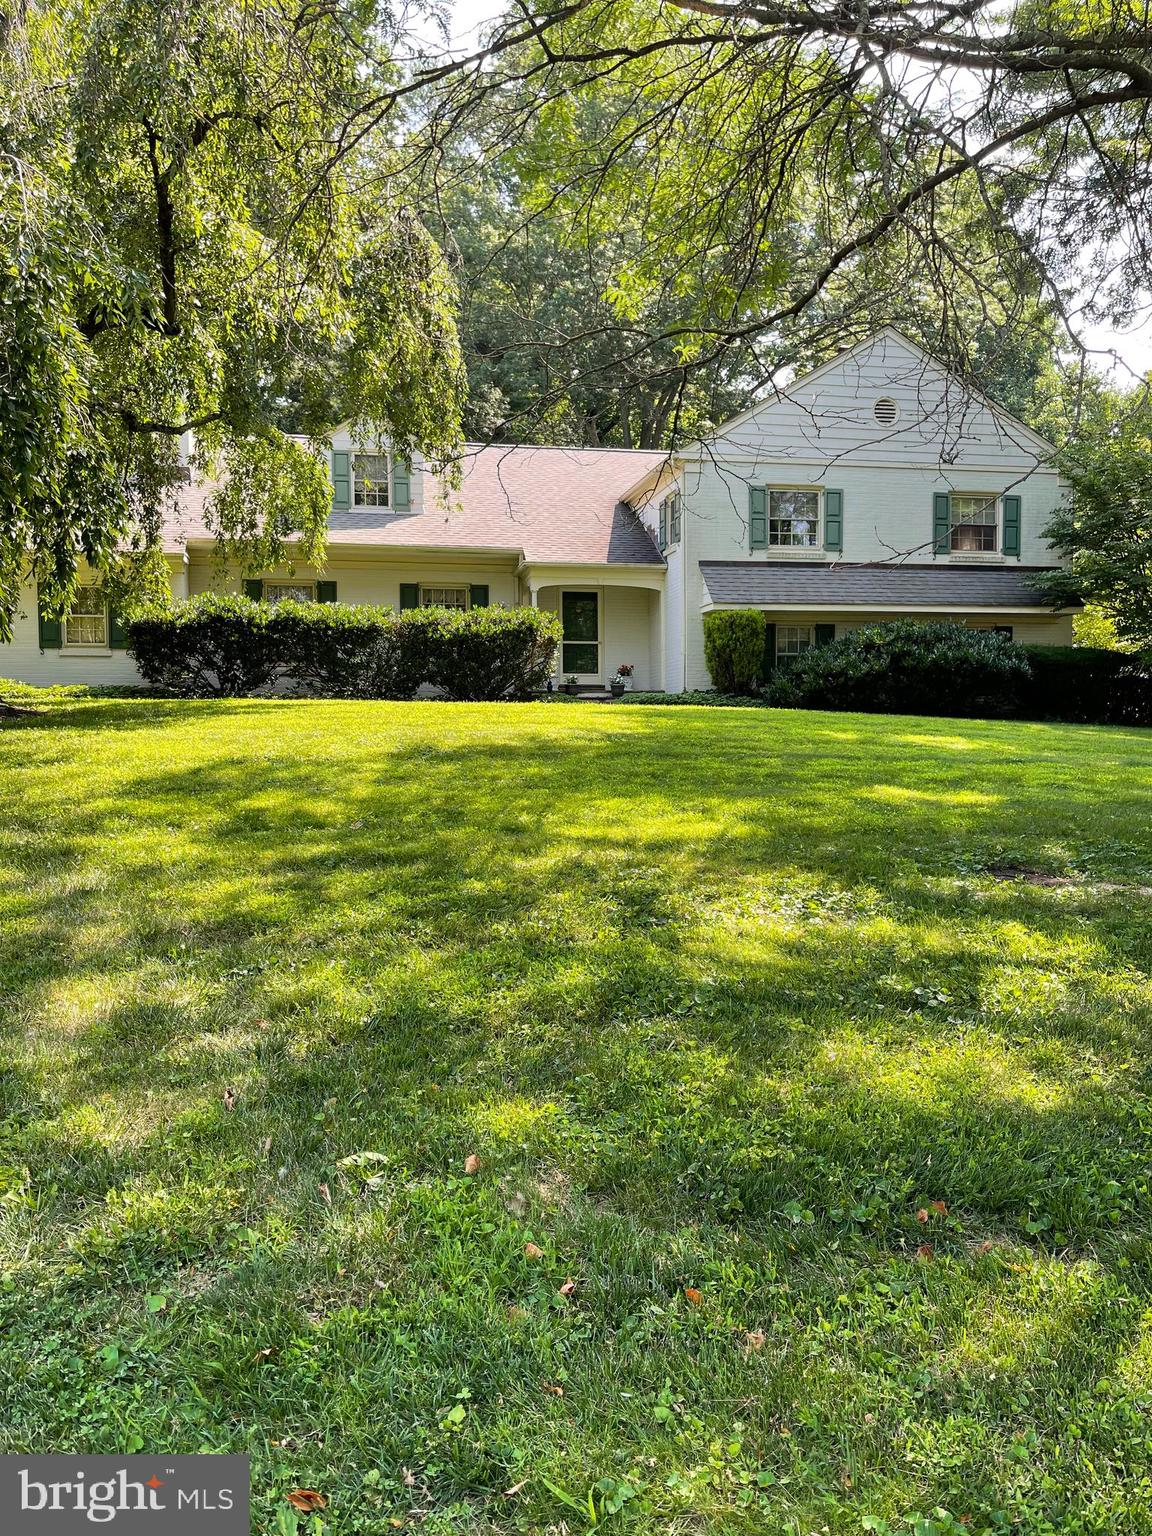 Beautiful Bryn Mawr Split Level in Lower Merion Township featuring five Bedrooms, three and a half baths is waiting for you!  Bright and sunny Main floor offers Foyer with coat closet, spacious Living Room with wood burning brick fireplace, formal Dining Room all with Crown Molding and hardwood floors.  The very large Eat-In Kitchen boasts Corian countertops, granite island, a stainless steel Thermador gas cooktop, a stainless-steel counter depth LG Refrigerator, a LG Microwave, a Thermador Convection wall Thermal Oven, a stainless steel Kitchen Aid Dishwasher, with sliders that open up to a flagstone path leading to a beautiful rear yard, flagstone terrace and covered patio.   Upper level 1 offers a wide Hallway, Primary Bedroom with ceiling fan, Dressing area, 2 main closets, built-in vanity and a Primary Bath with stall shower.  Hall Linen Closet, Hall bath with updated sinks and faucets, and laundry chute, two additional Bedrooms all with ceiling fans, and hardwoods complete this level.   Upper level 2 includes a walk-in attic off the hallway, Bedroom 4 includes steps to an additional fully floored attic with a new attic fan, Jack and Jill Bathroom, and Bedroom 5 includes two sets of built-in drawers, and hardwoods complete this floor.  The attic storage is endless!! Finished Lower Level offers a large walk-in closet, Family Room with a second over-sized walk-in closet, Powder Room and slider to rear covered flagstone Patio.   No steps to a full unfinished basement with crawl, Laundry Room w/Laundry Chute and outside exit.  Central Air, Gas Heat, a two car Garage and more!!